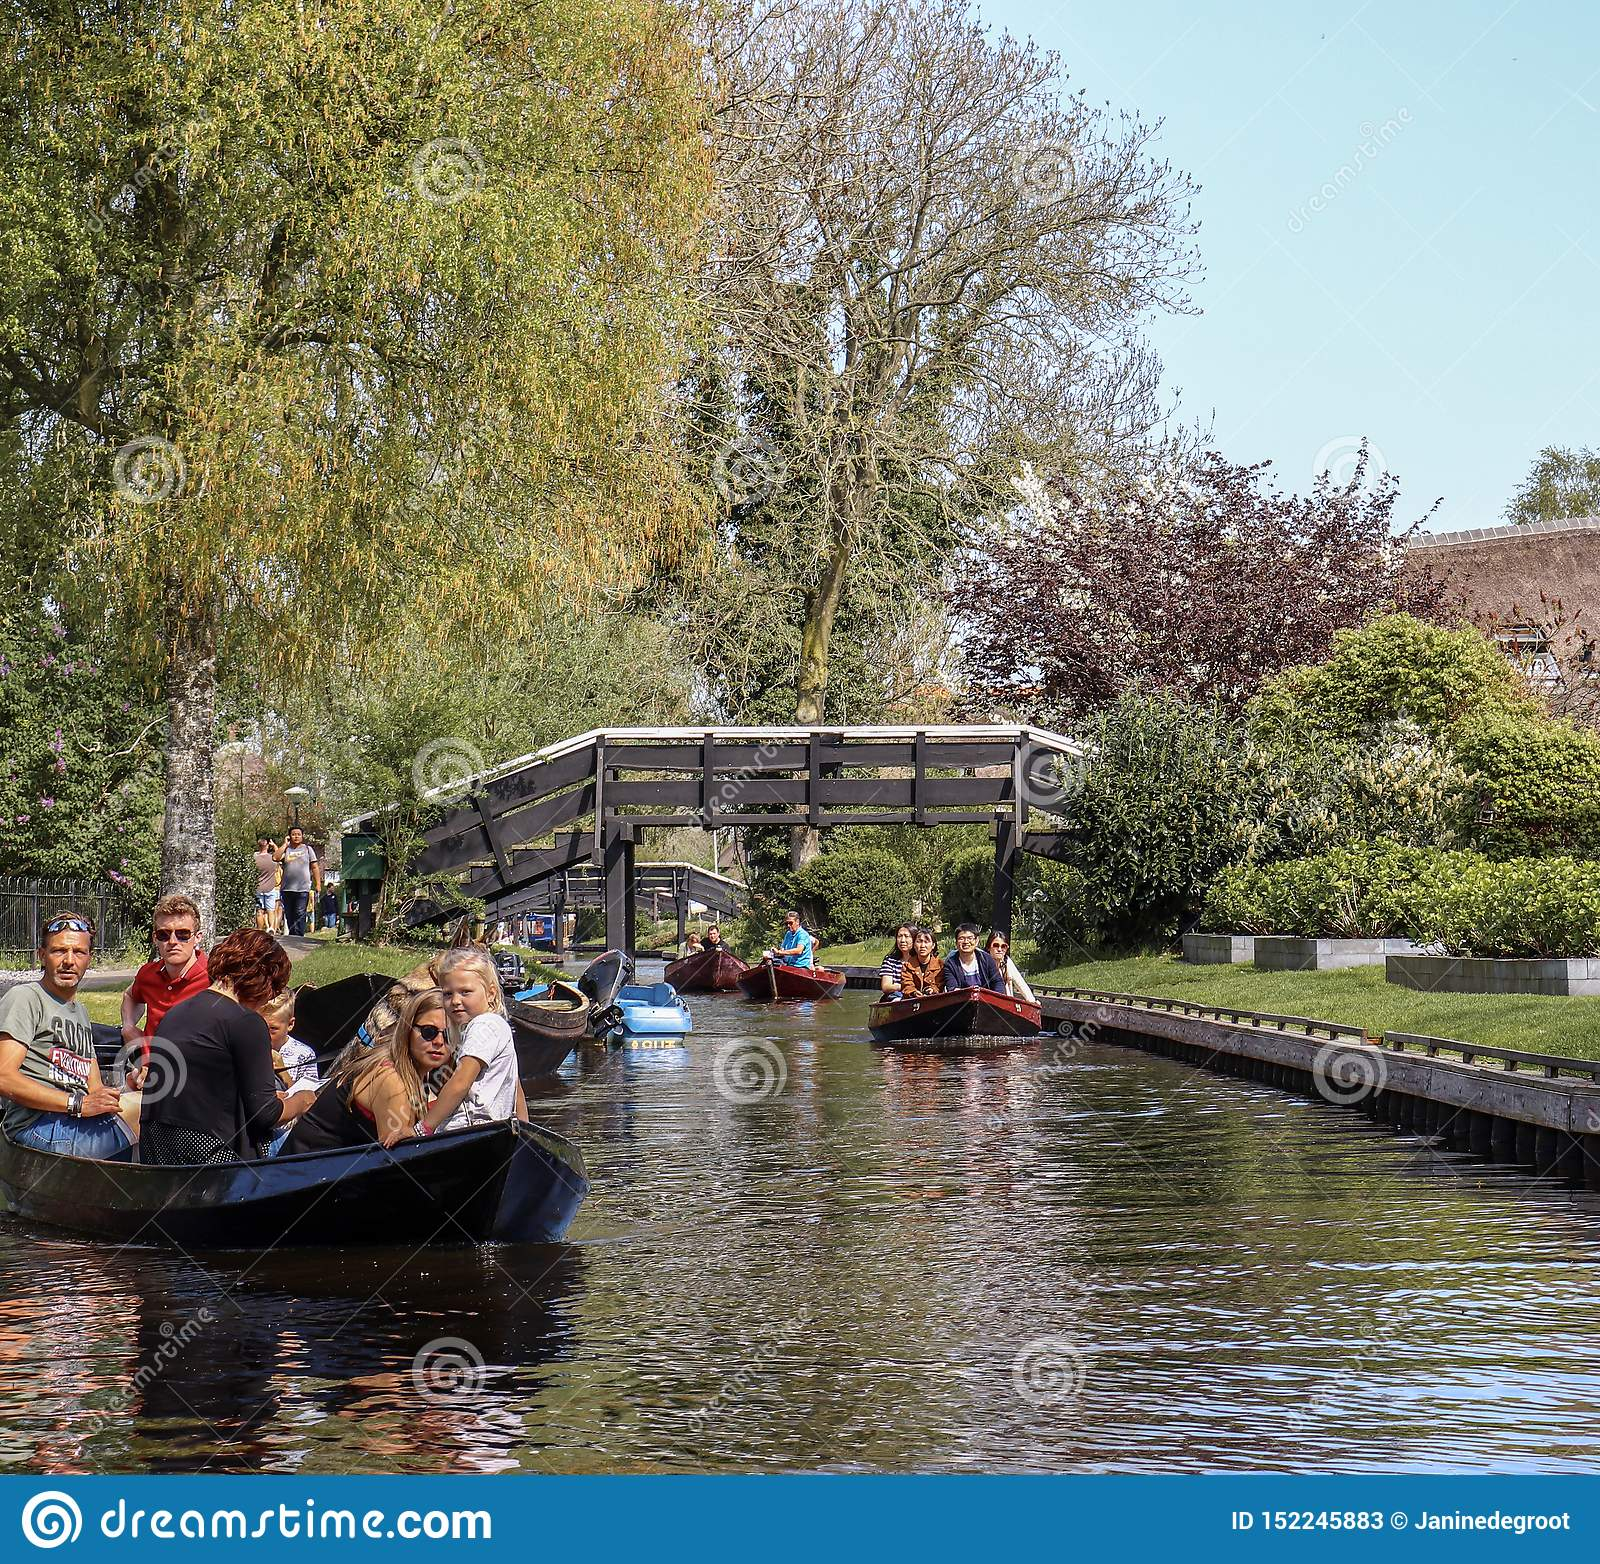 Giethoorn, Pays-Bas - 22 avril 2019